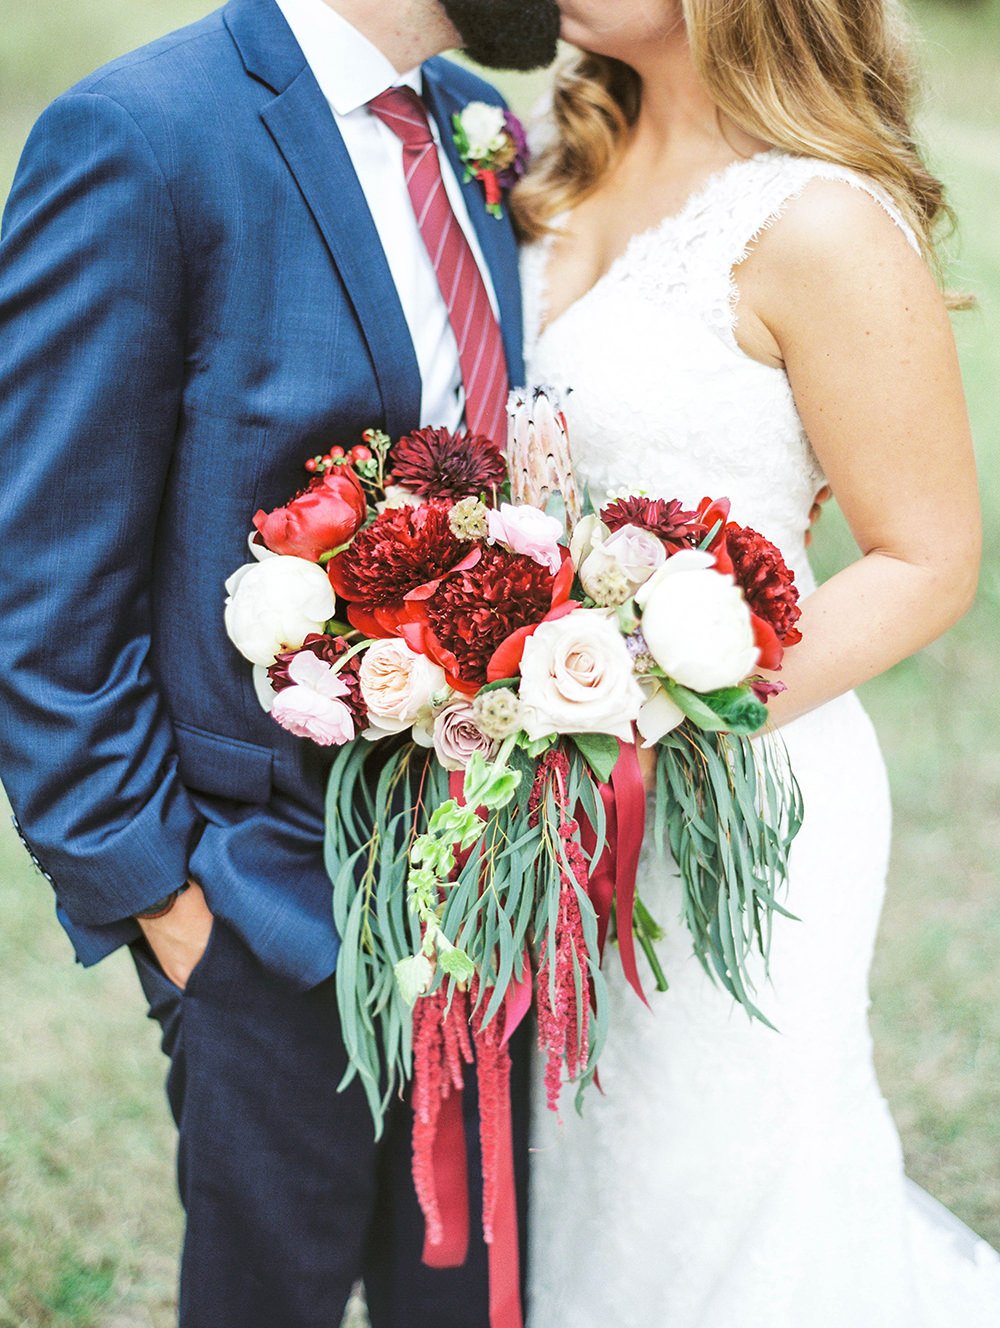 bouquets with hanging amaranthus - photo by Honey Gem Creative https://ruffledblog.com/hill-country-garden-wedding